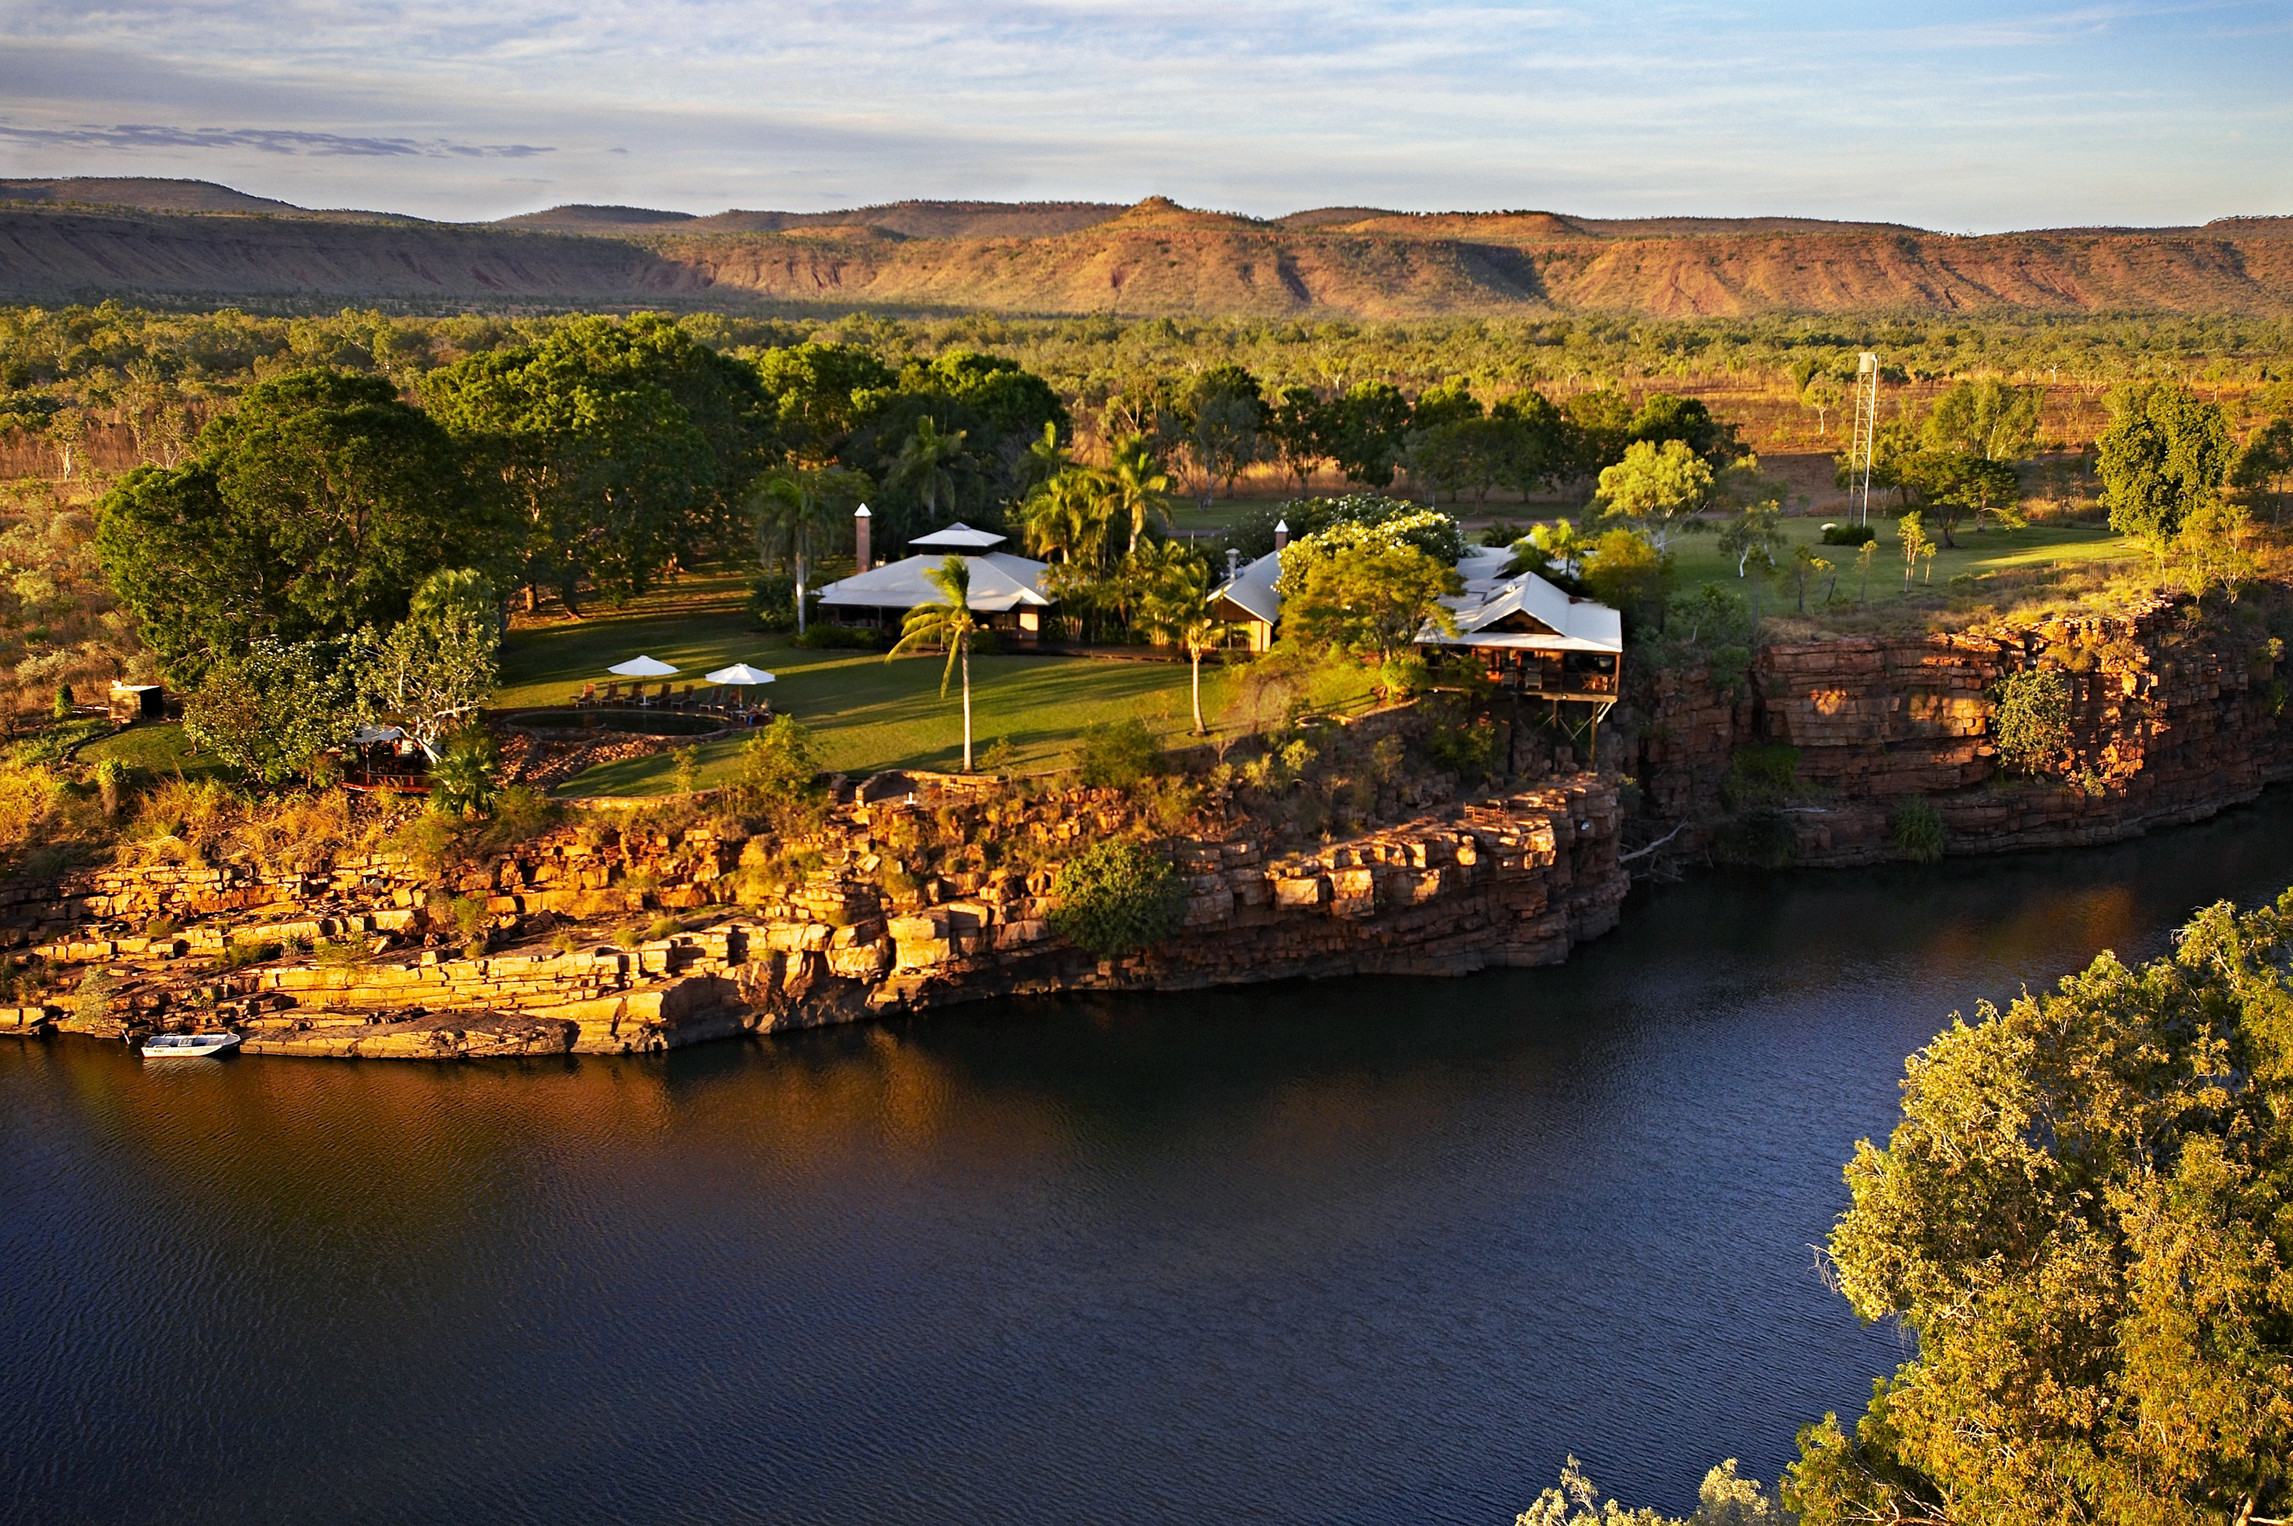 El-Questro-Homestead_The-Kimberley-Aerial-view.jpg